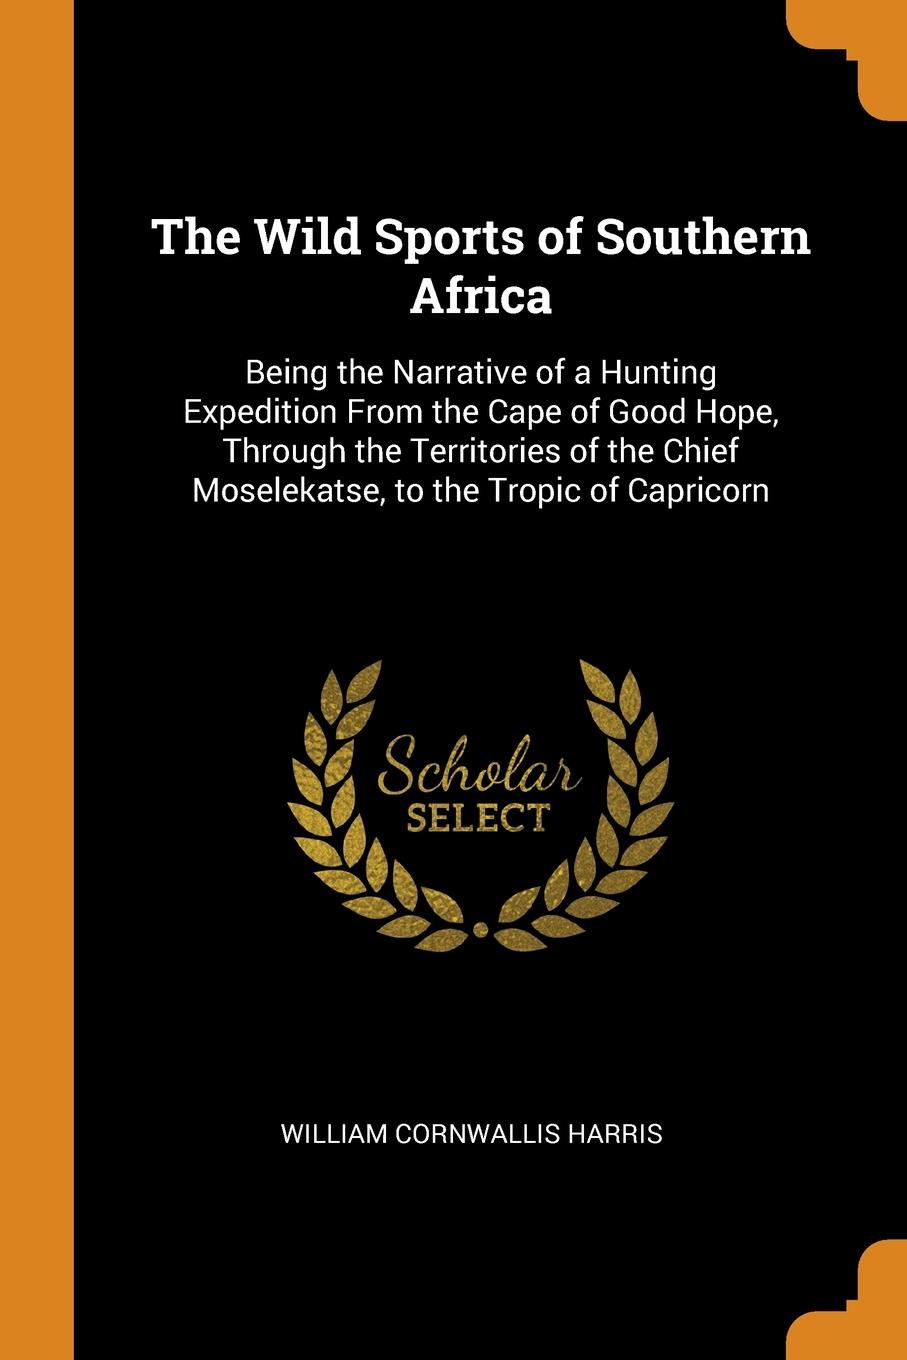 The Wild Sports of Southern Africa. Being the Narrative of a Hunting Expedition From the Cape of Good Hope, Through the Territories of the Chief Moselekatse, to the Tropic of Capricorn